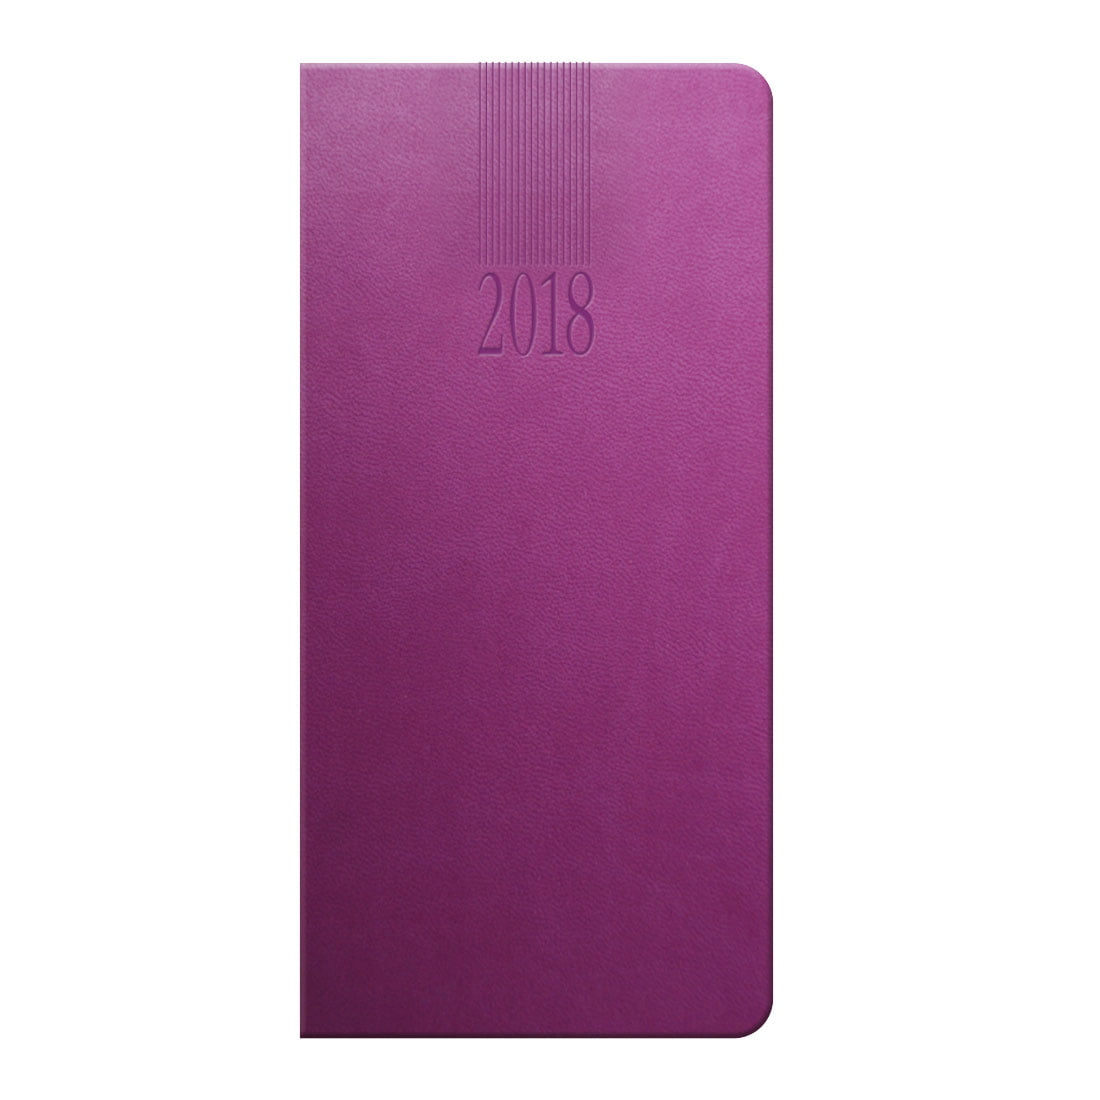 Tuscon weekly pocket diary in purple with a padded cover, ribbon marker, UK & World maps. Printed with your logo.